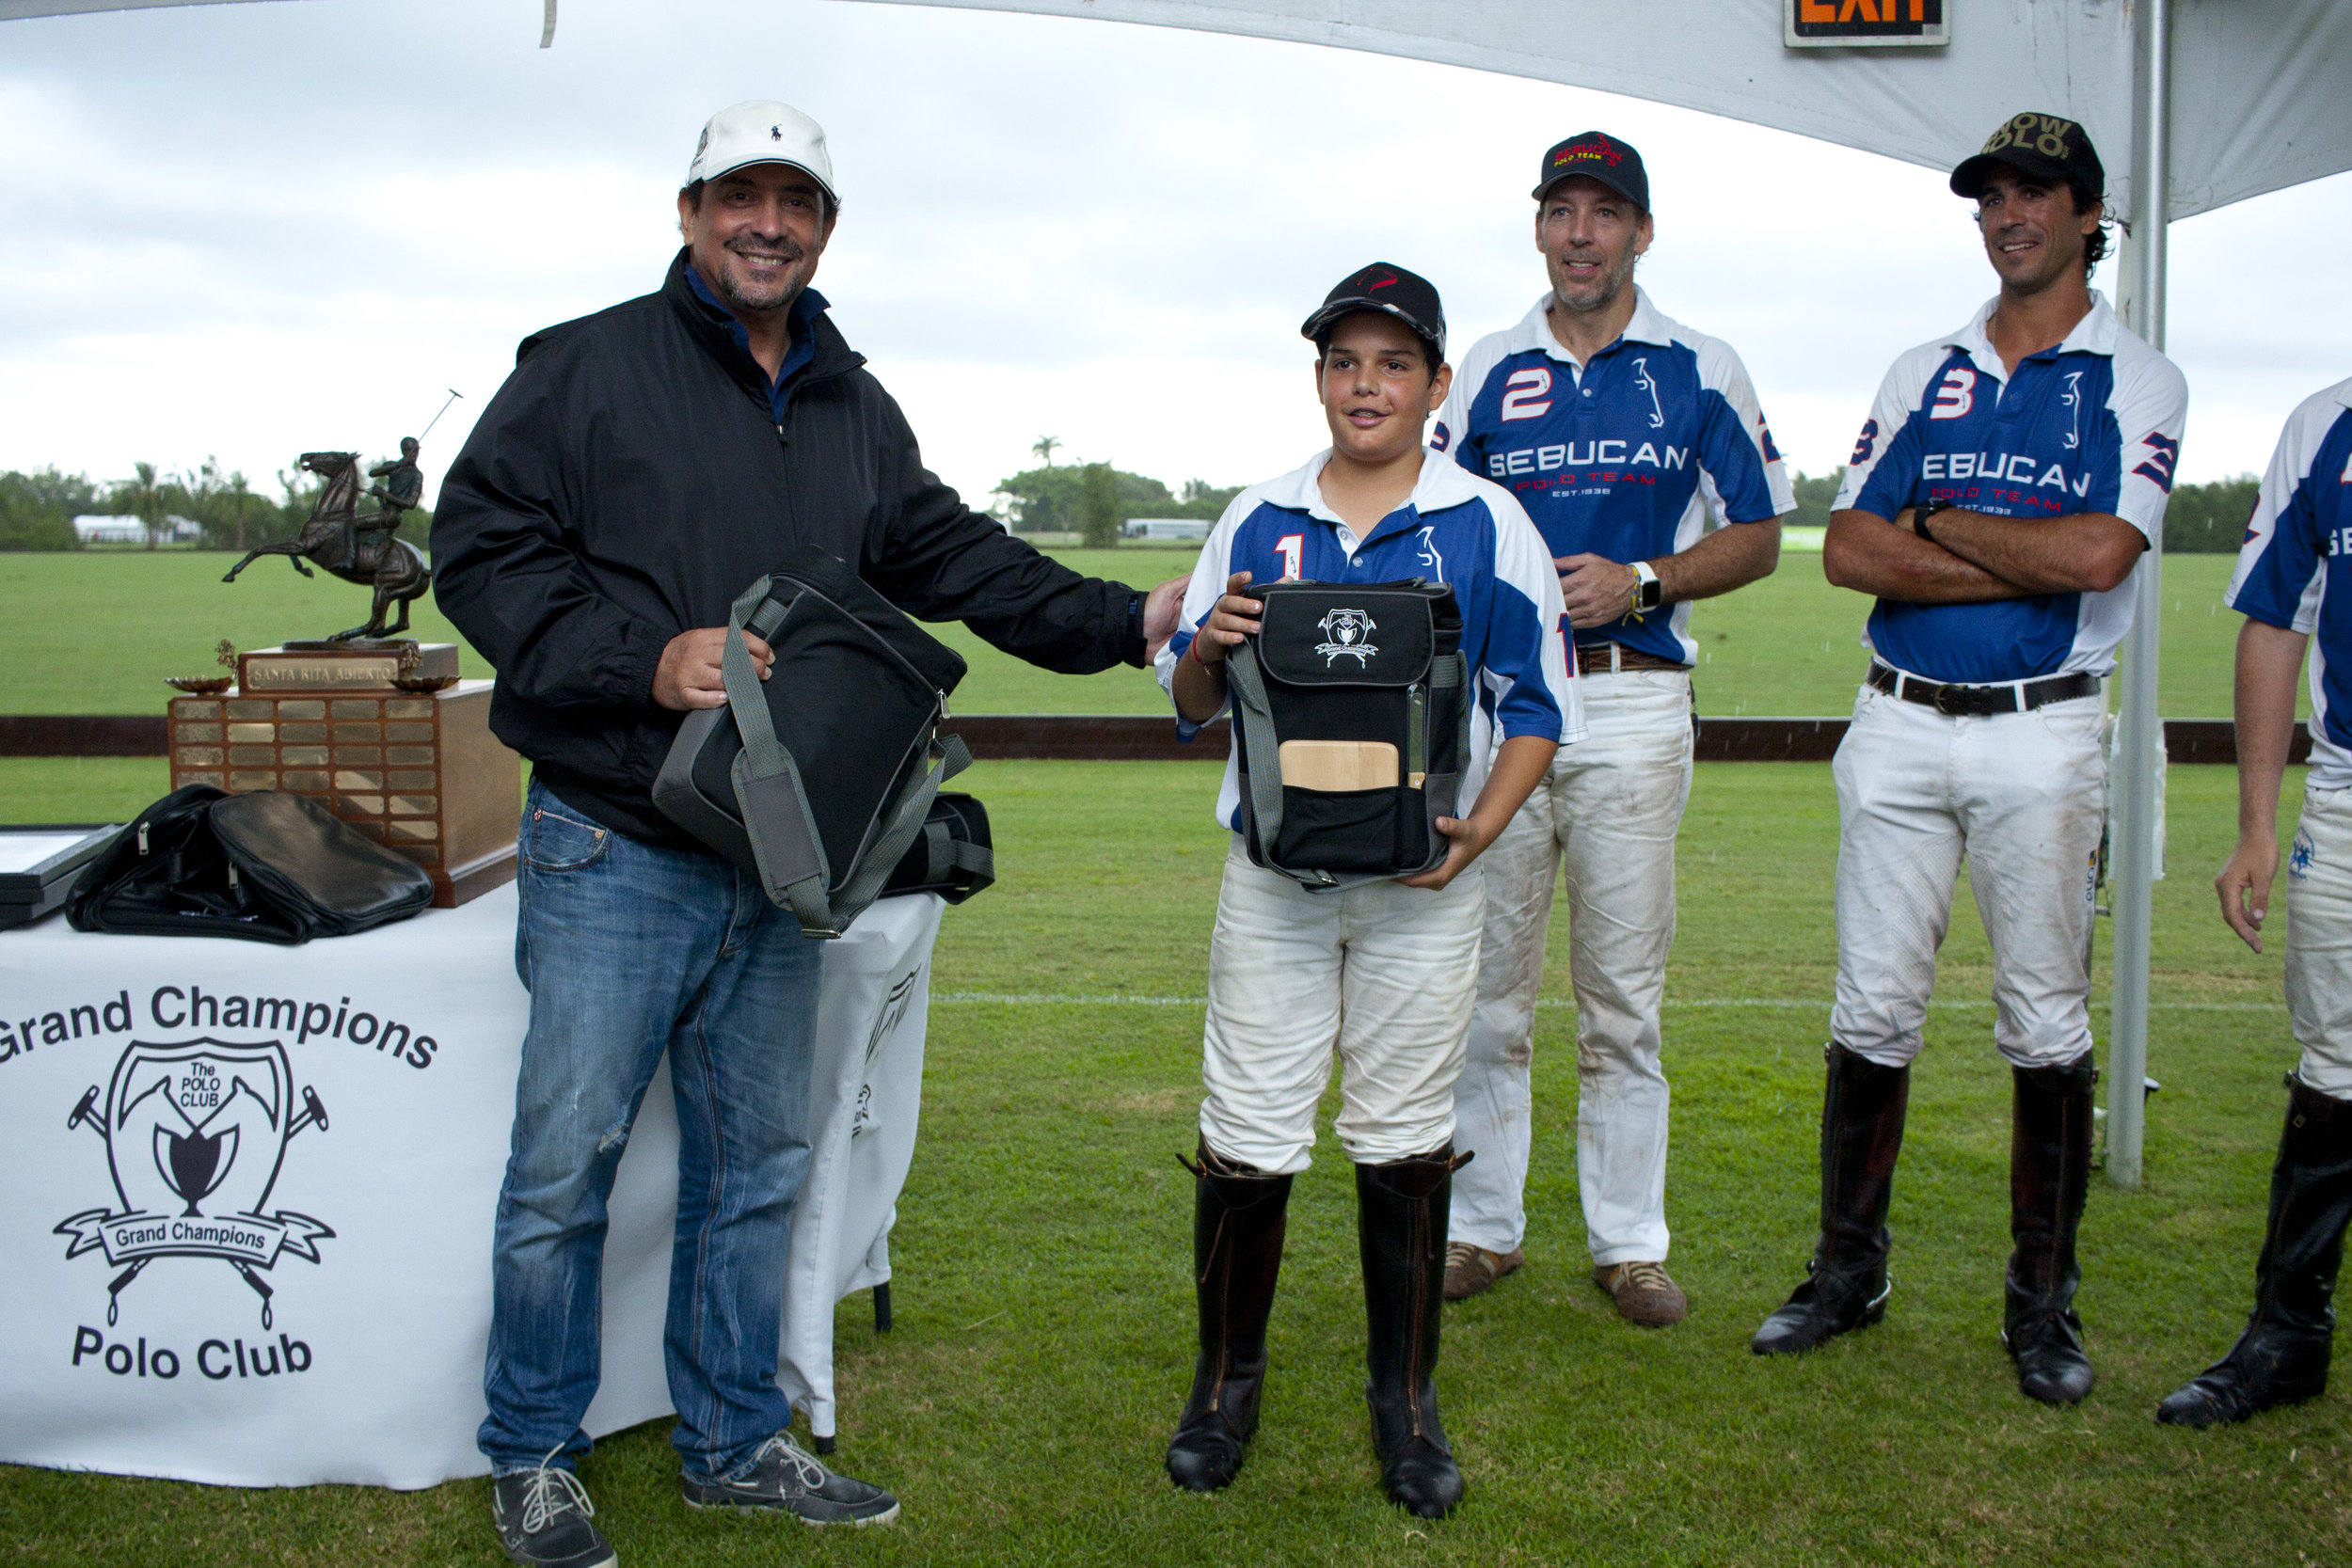 Josh Dubarry of Sebucan receiving his polo sw.JPG